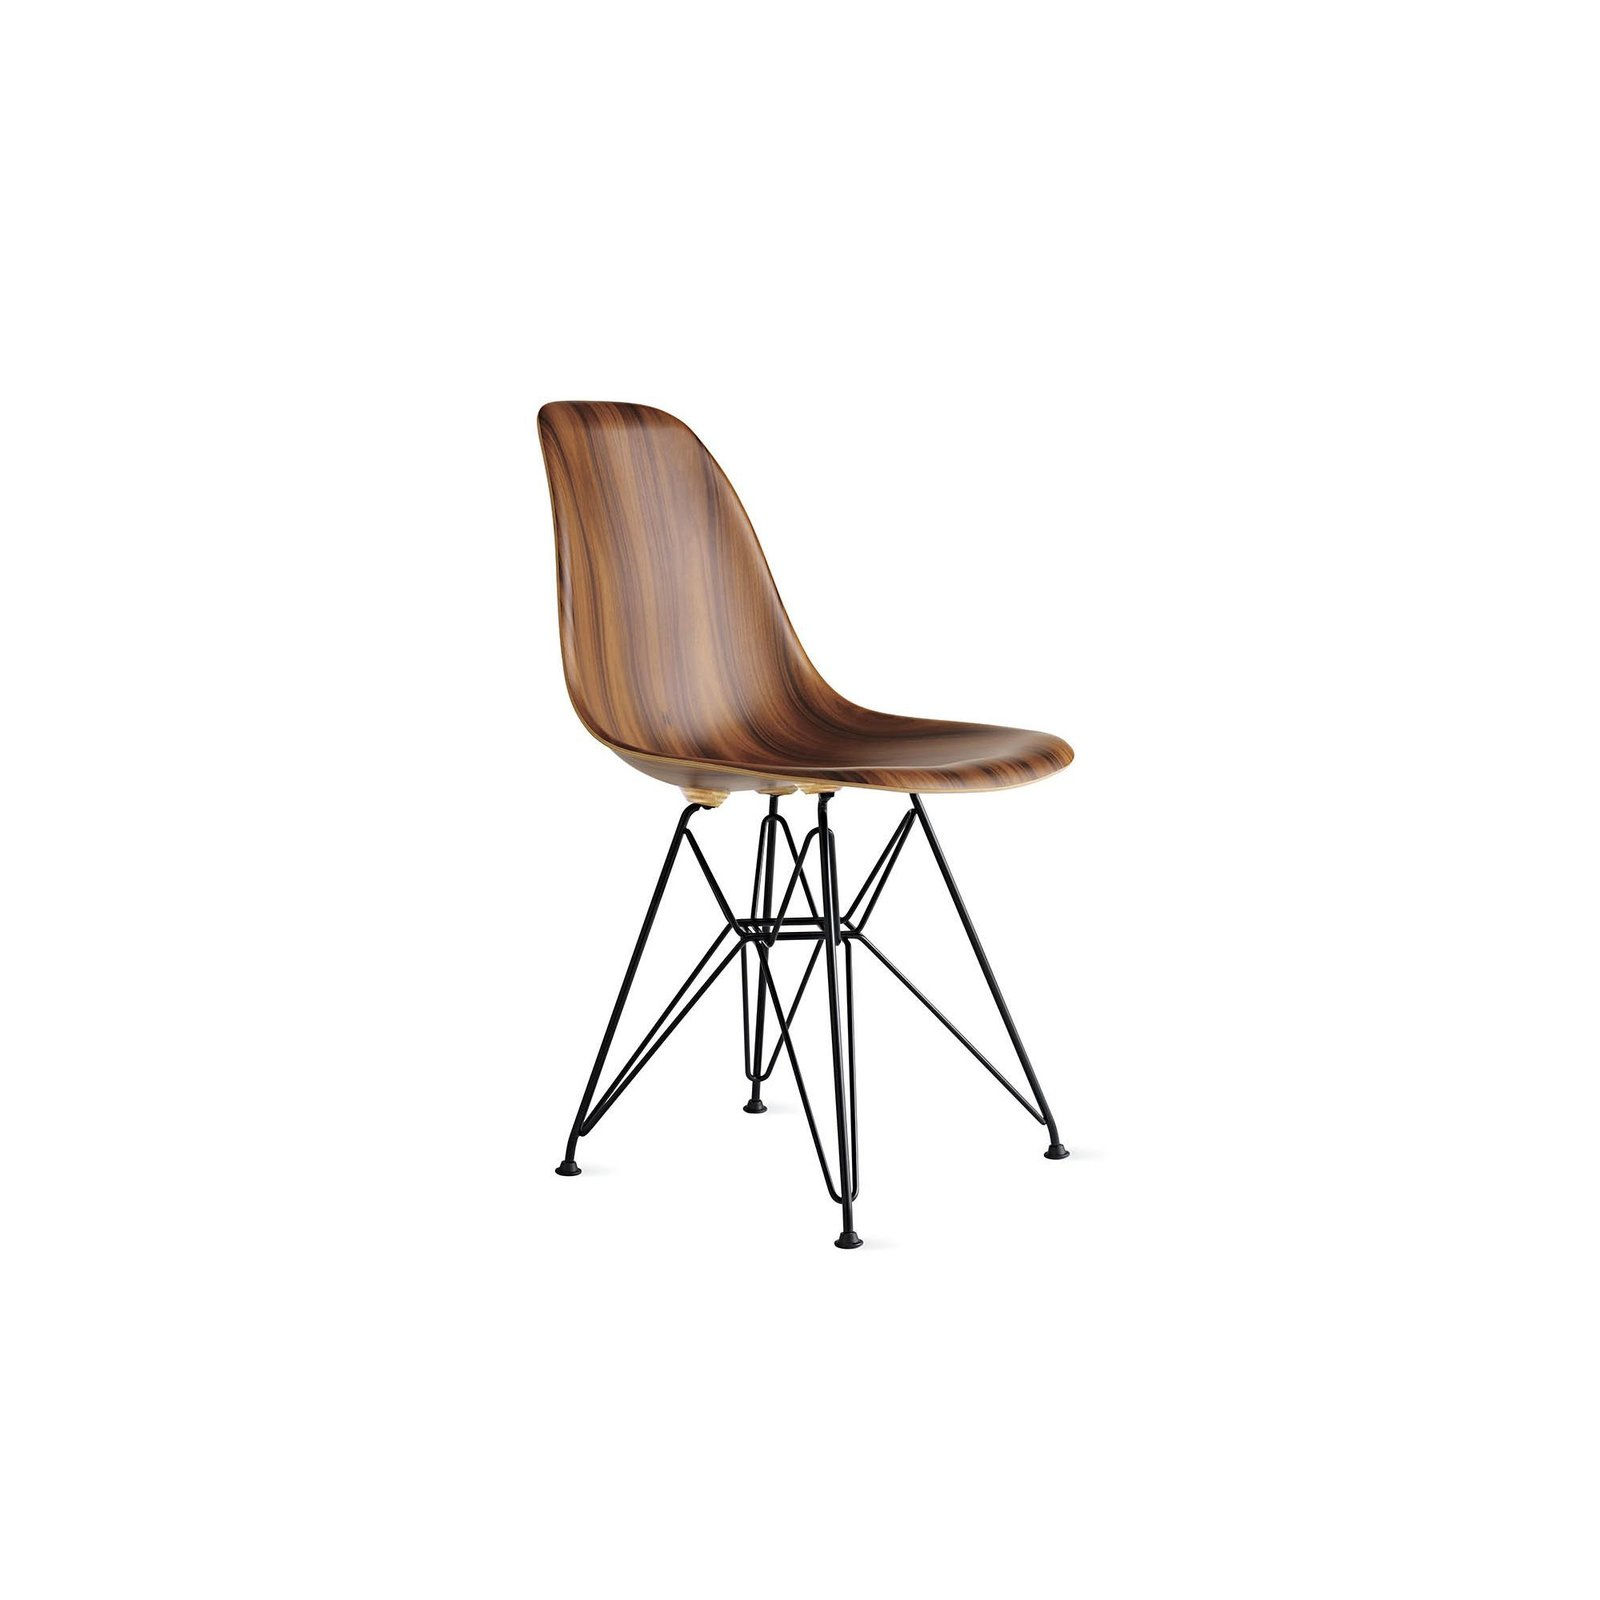 eames molded wood side chair tall deer blind chairs dwell